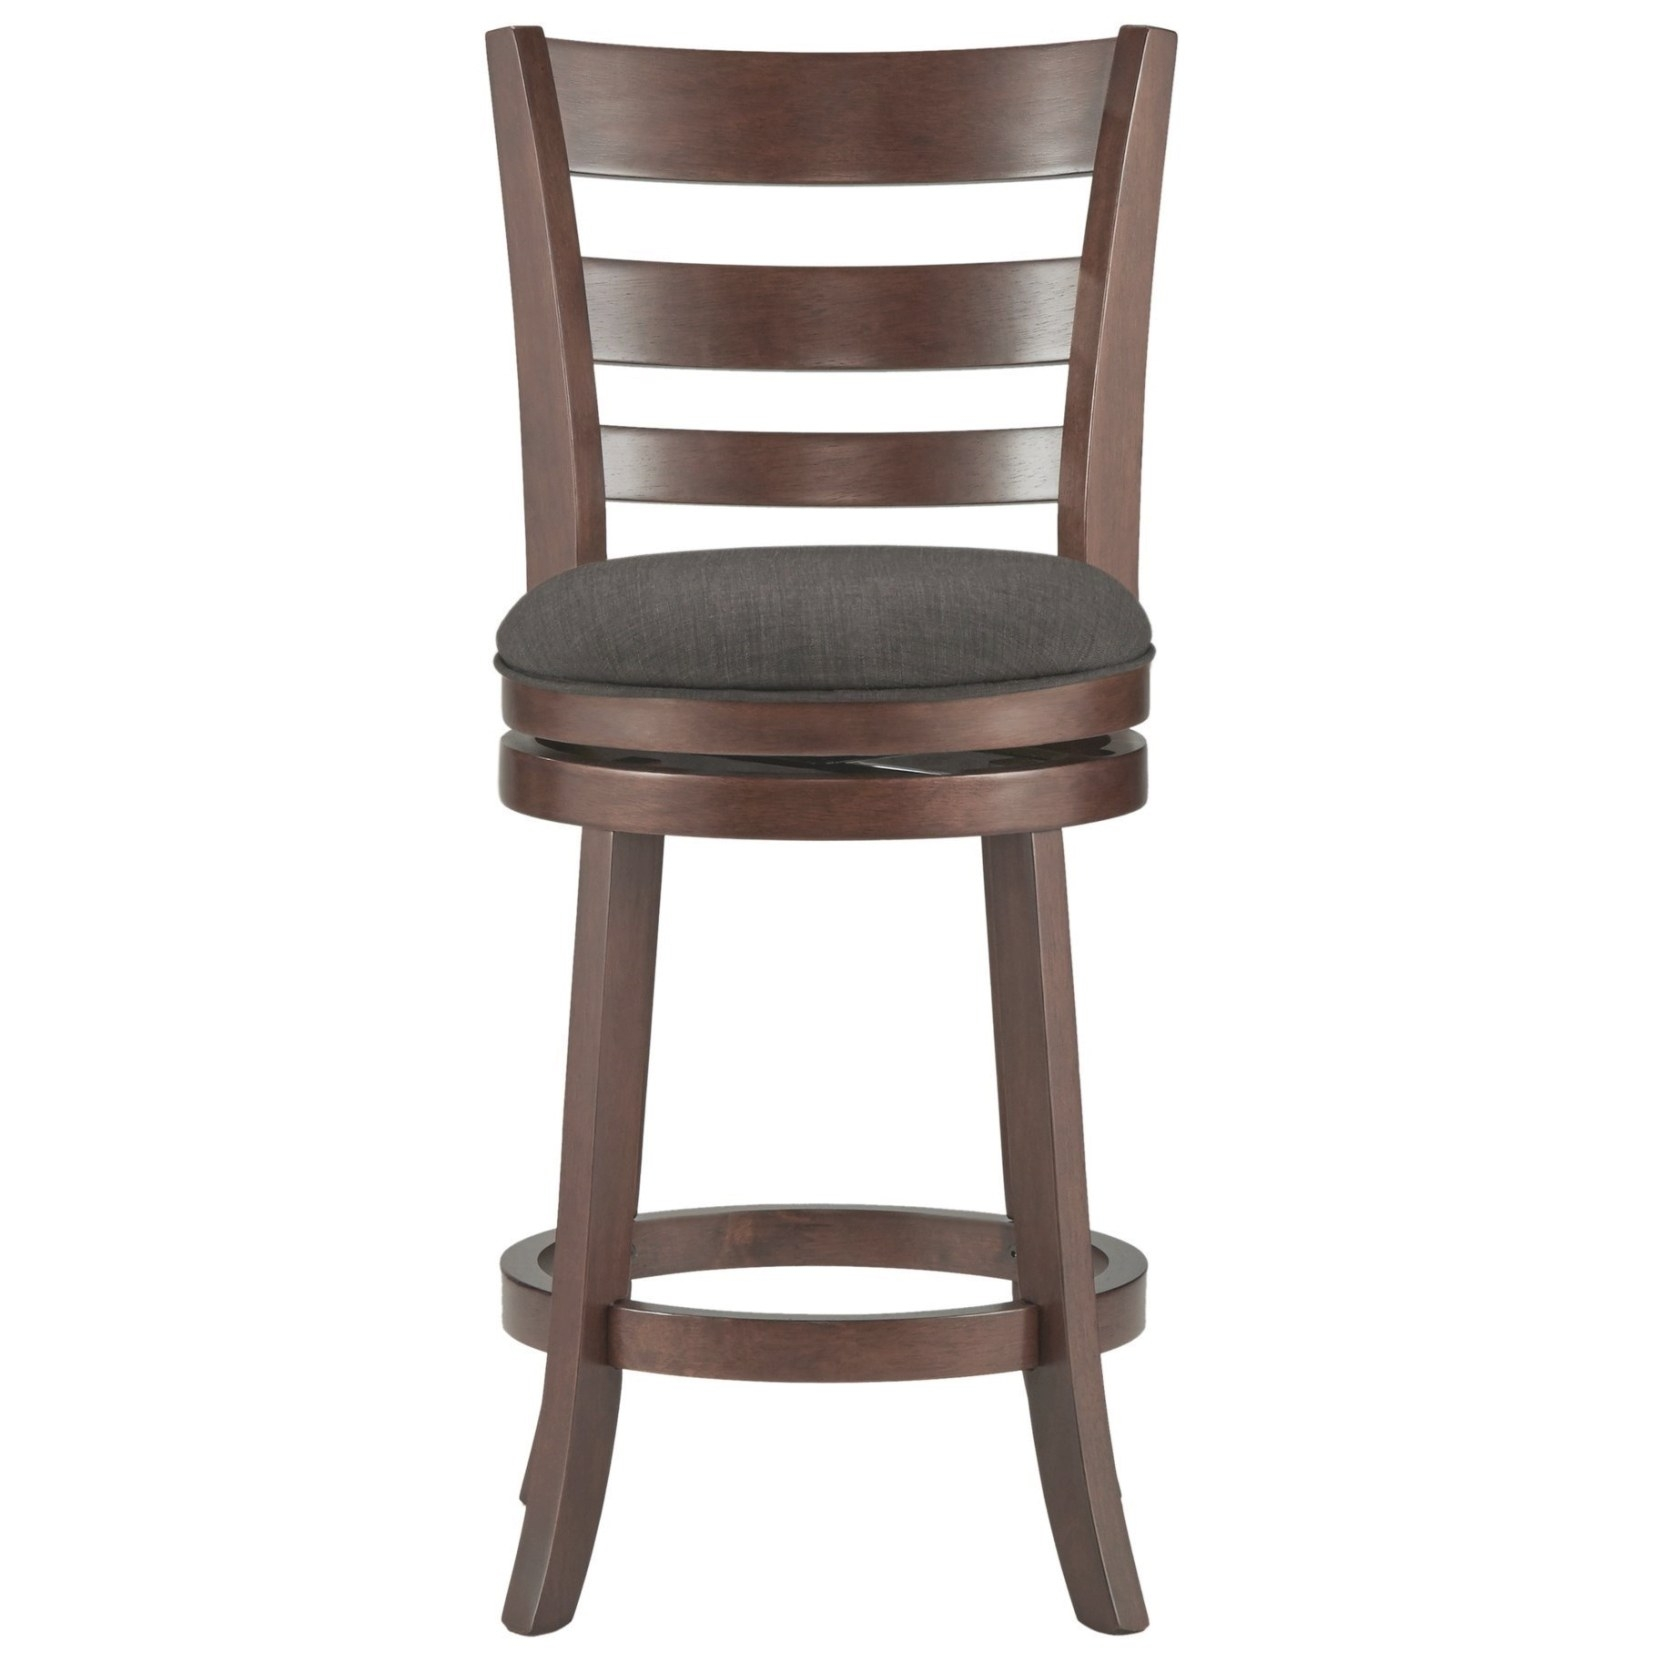 Homelegance Edmond Counter Height Swivel Stool With intended for Counter Height Bar Stools